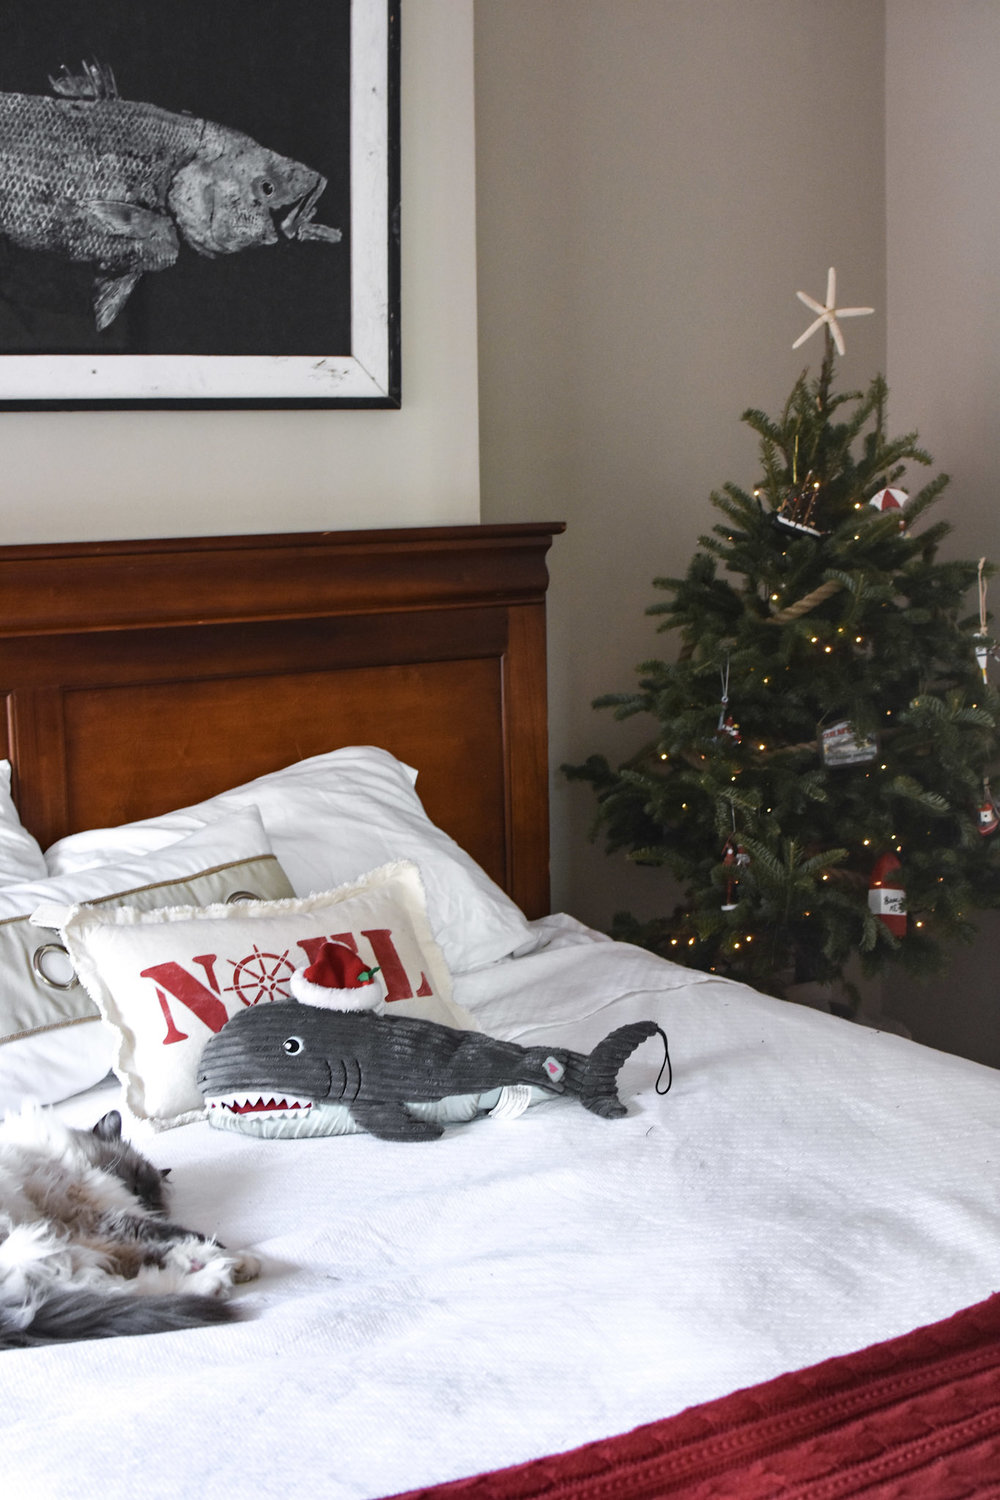 This delightful print from  Pete's Fresh Fish Prints  hangs above the bed all year long.  Flick-the-cat has a penchant for tossing off his Santa hat; however on Ralphie-the-dog's whale toy, it fits just right.